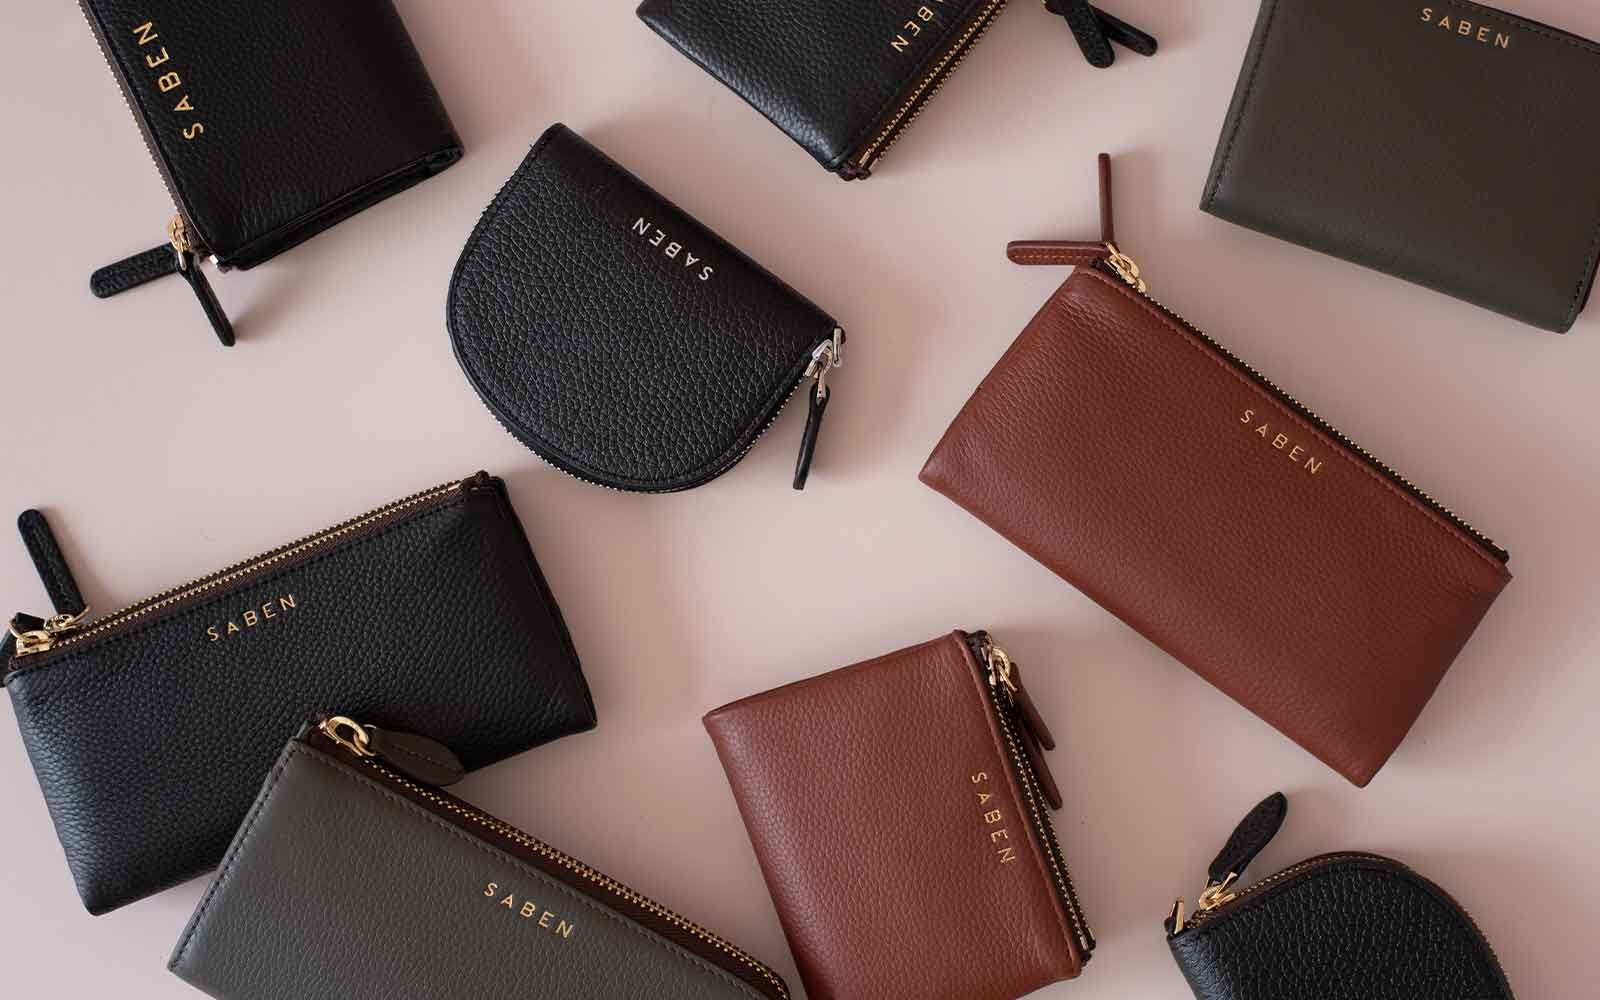 Saben leather wallets in assorted sizes and colours